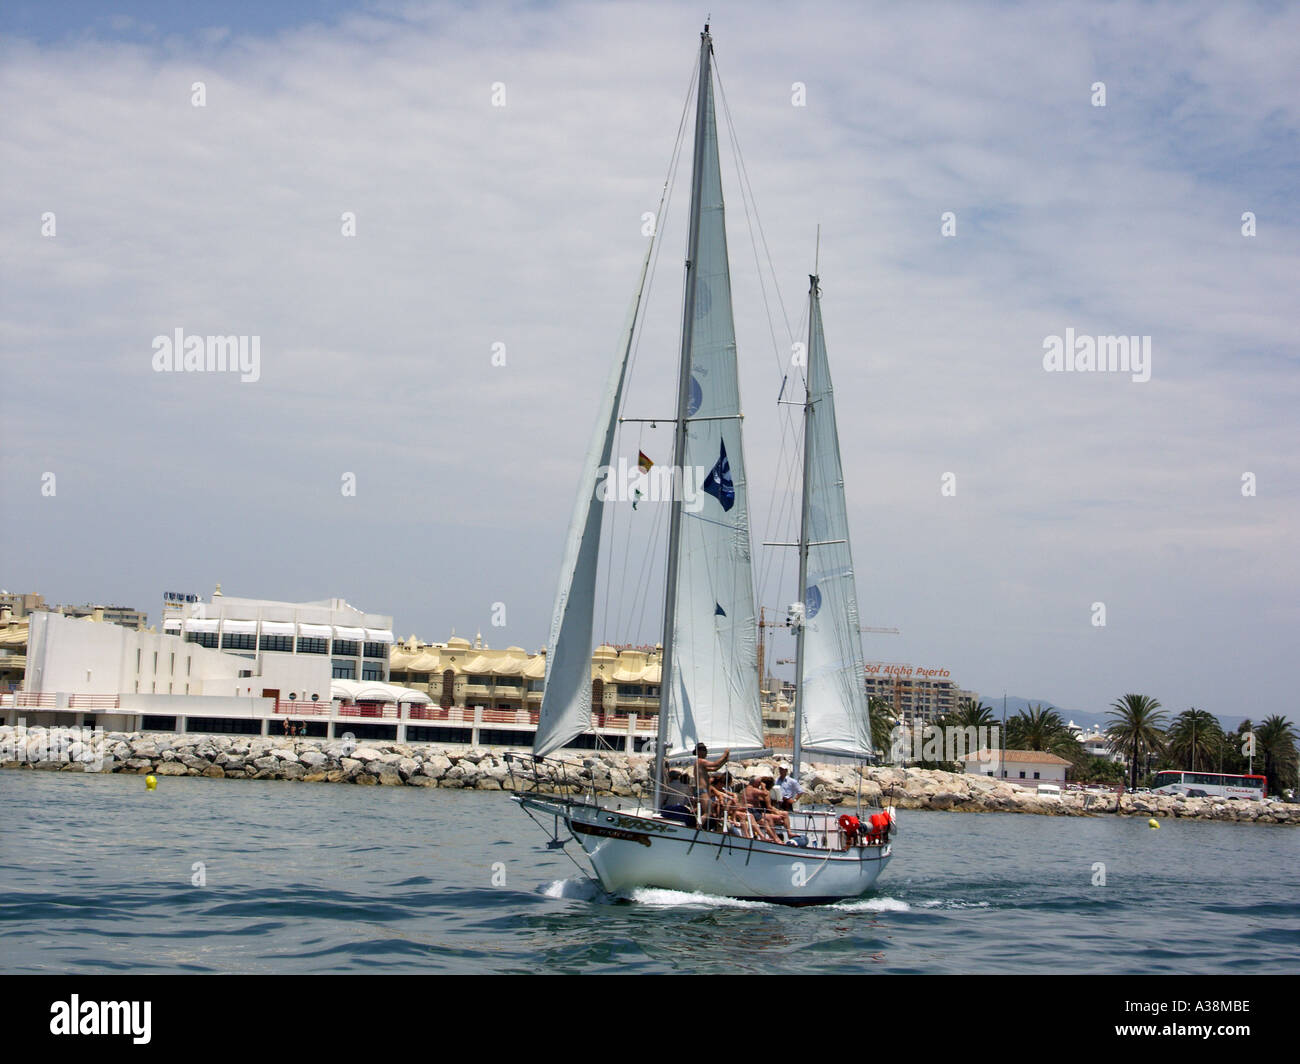 Yacht Sailing in the Mediterranean Sea off the coast of Benalmadena Costa del Sol Spain  yacht yachts sail sails - Stock Image